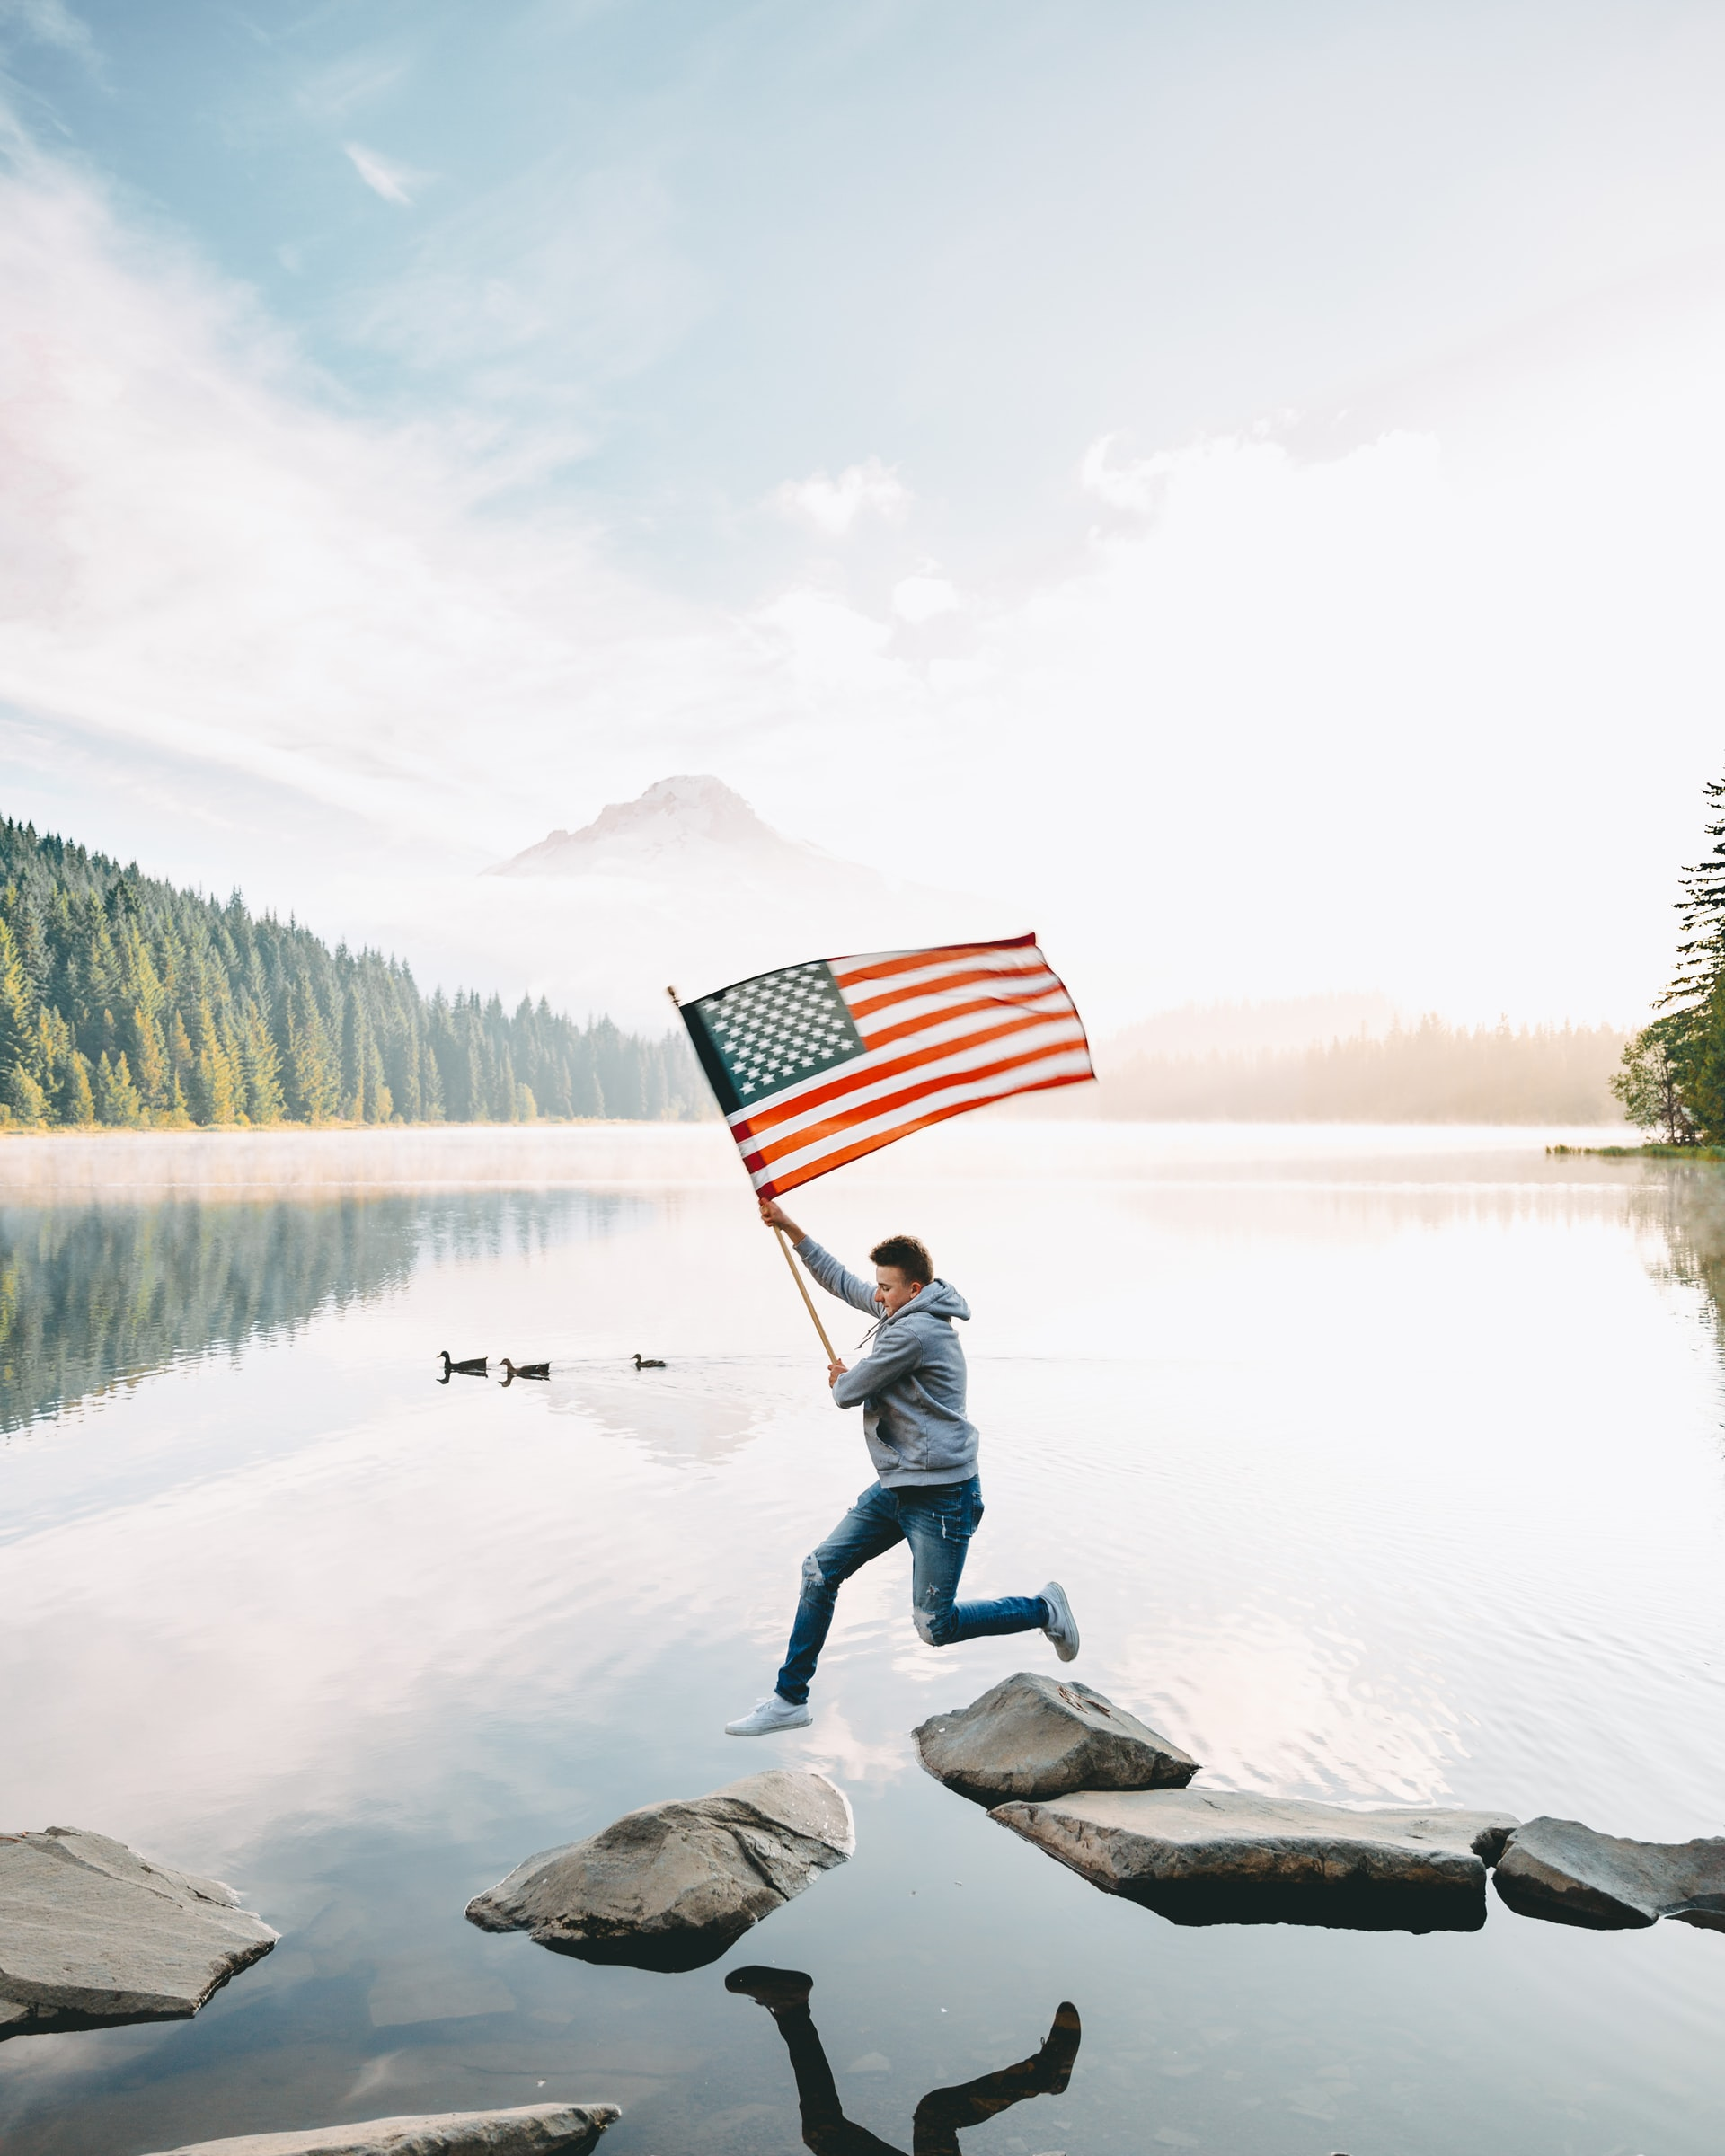 Why the American flag is important